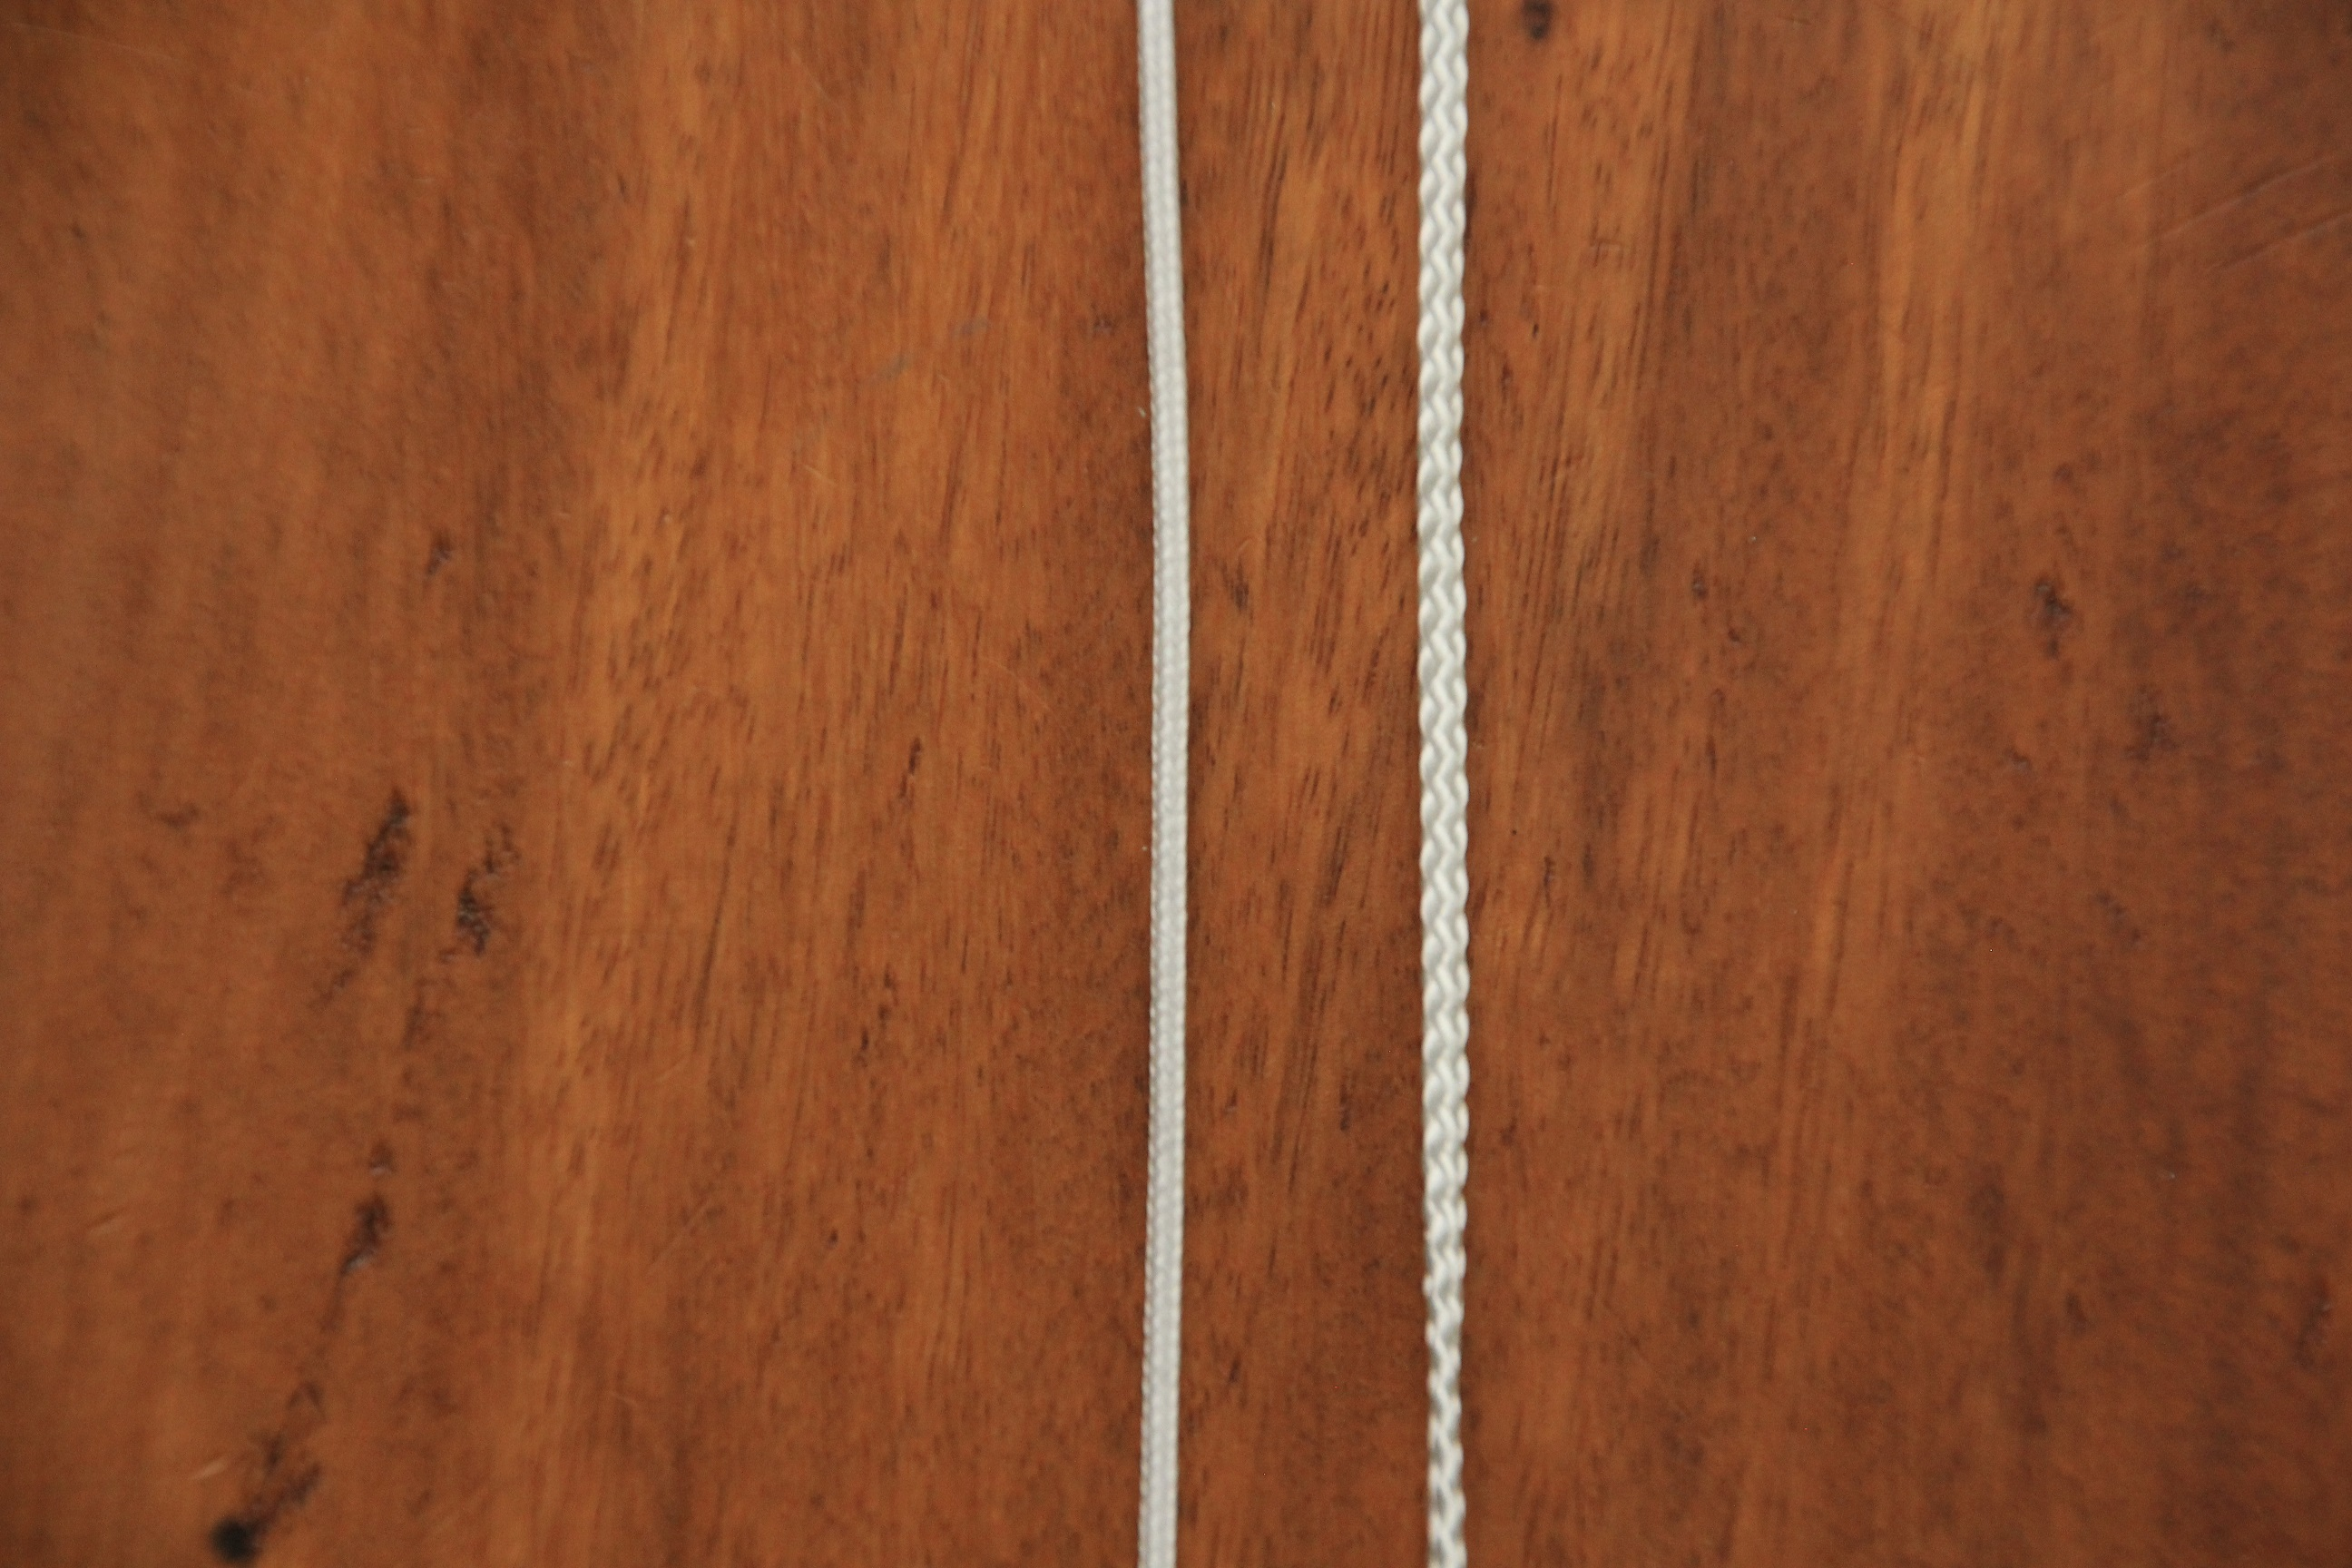 Image of a thinly braided line on the left and a heavy braided line on the right